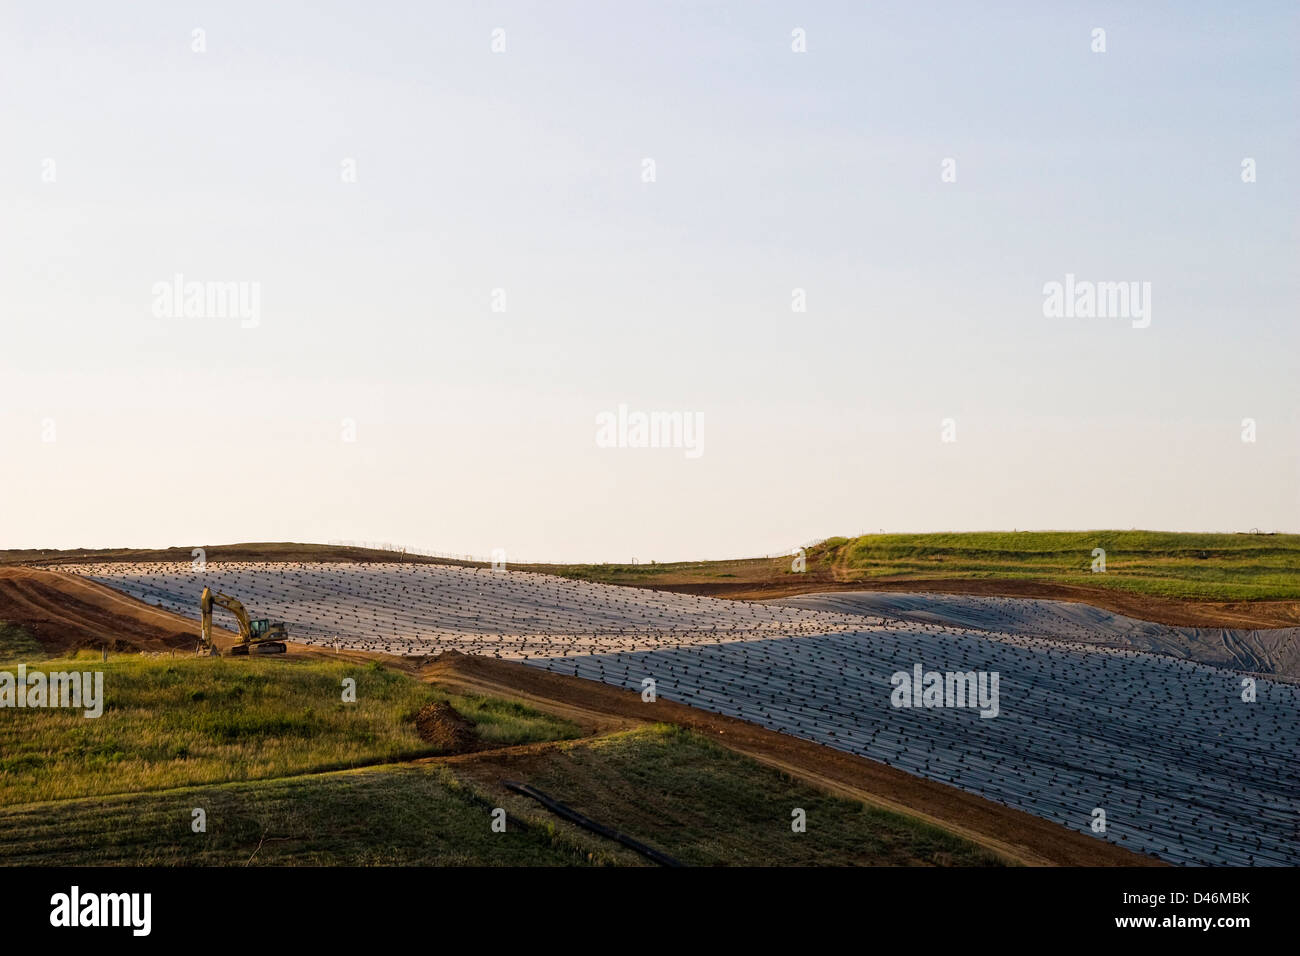 A landfill in the evening sun. - Stock Image